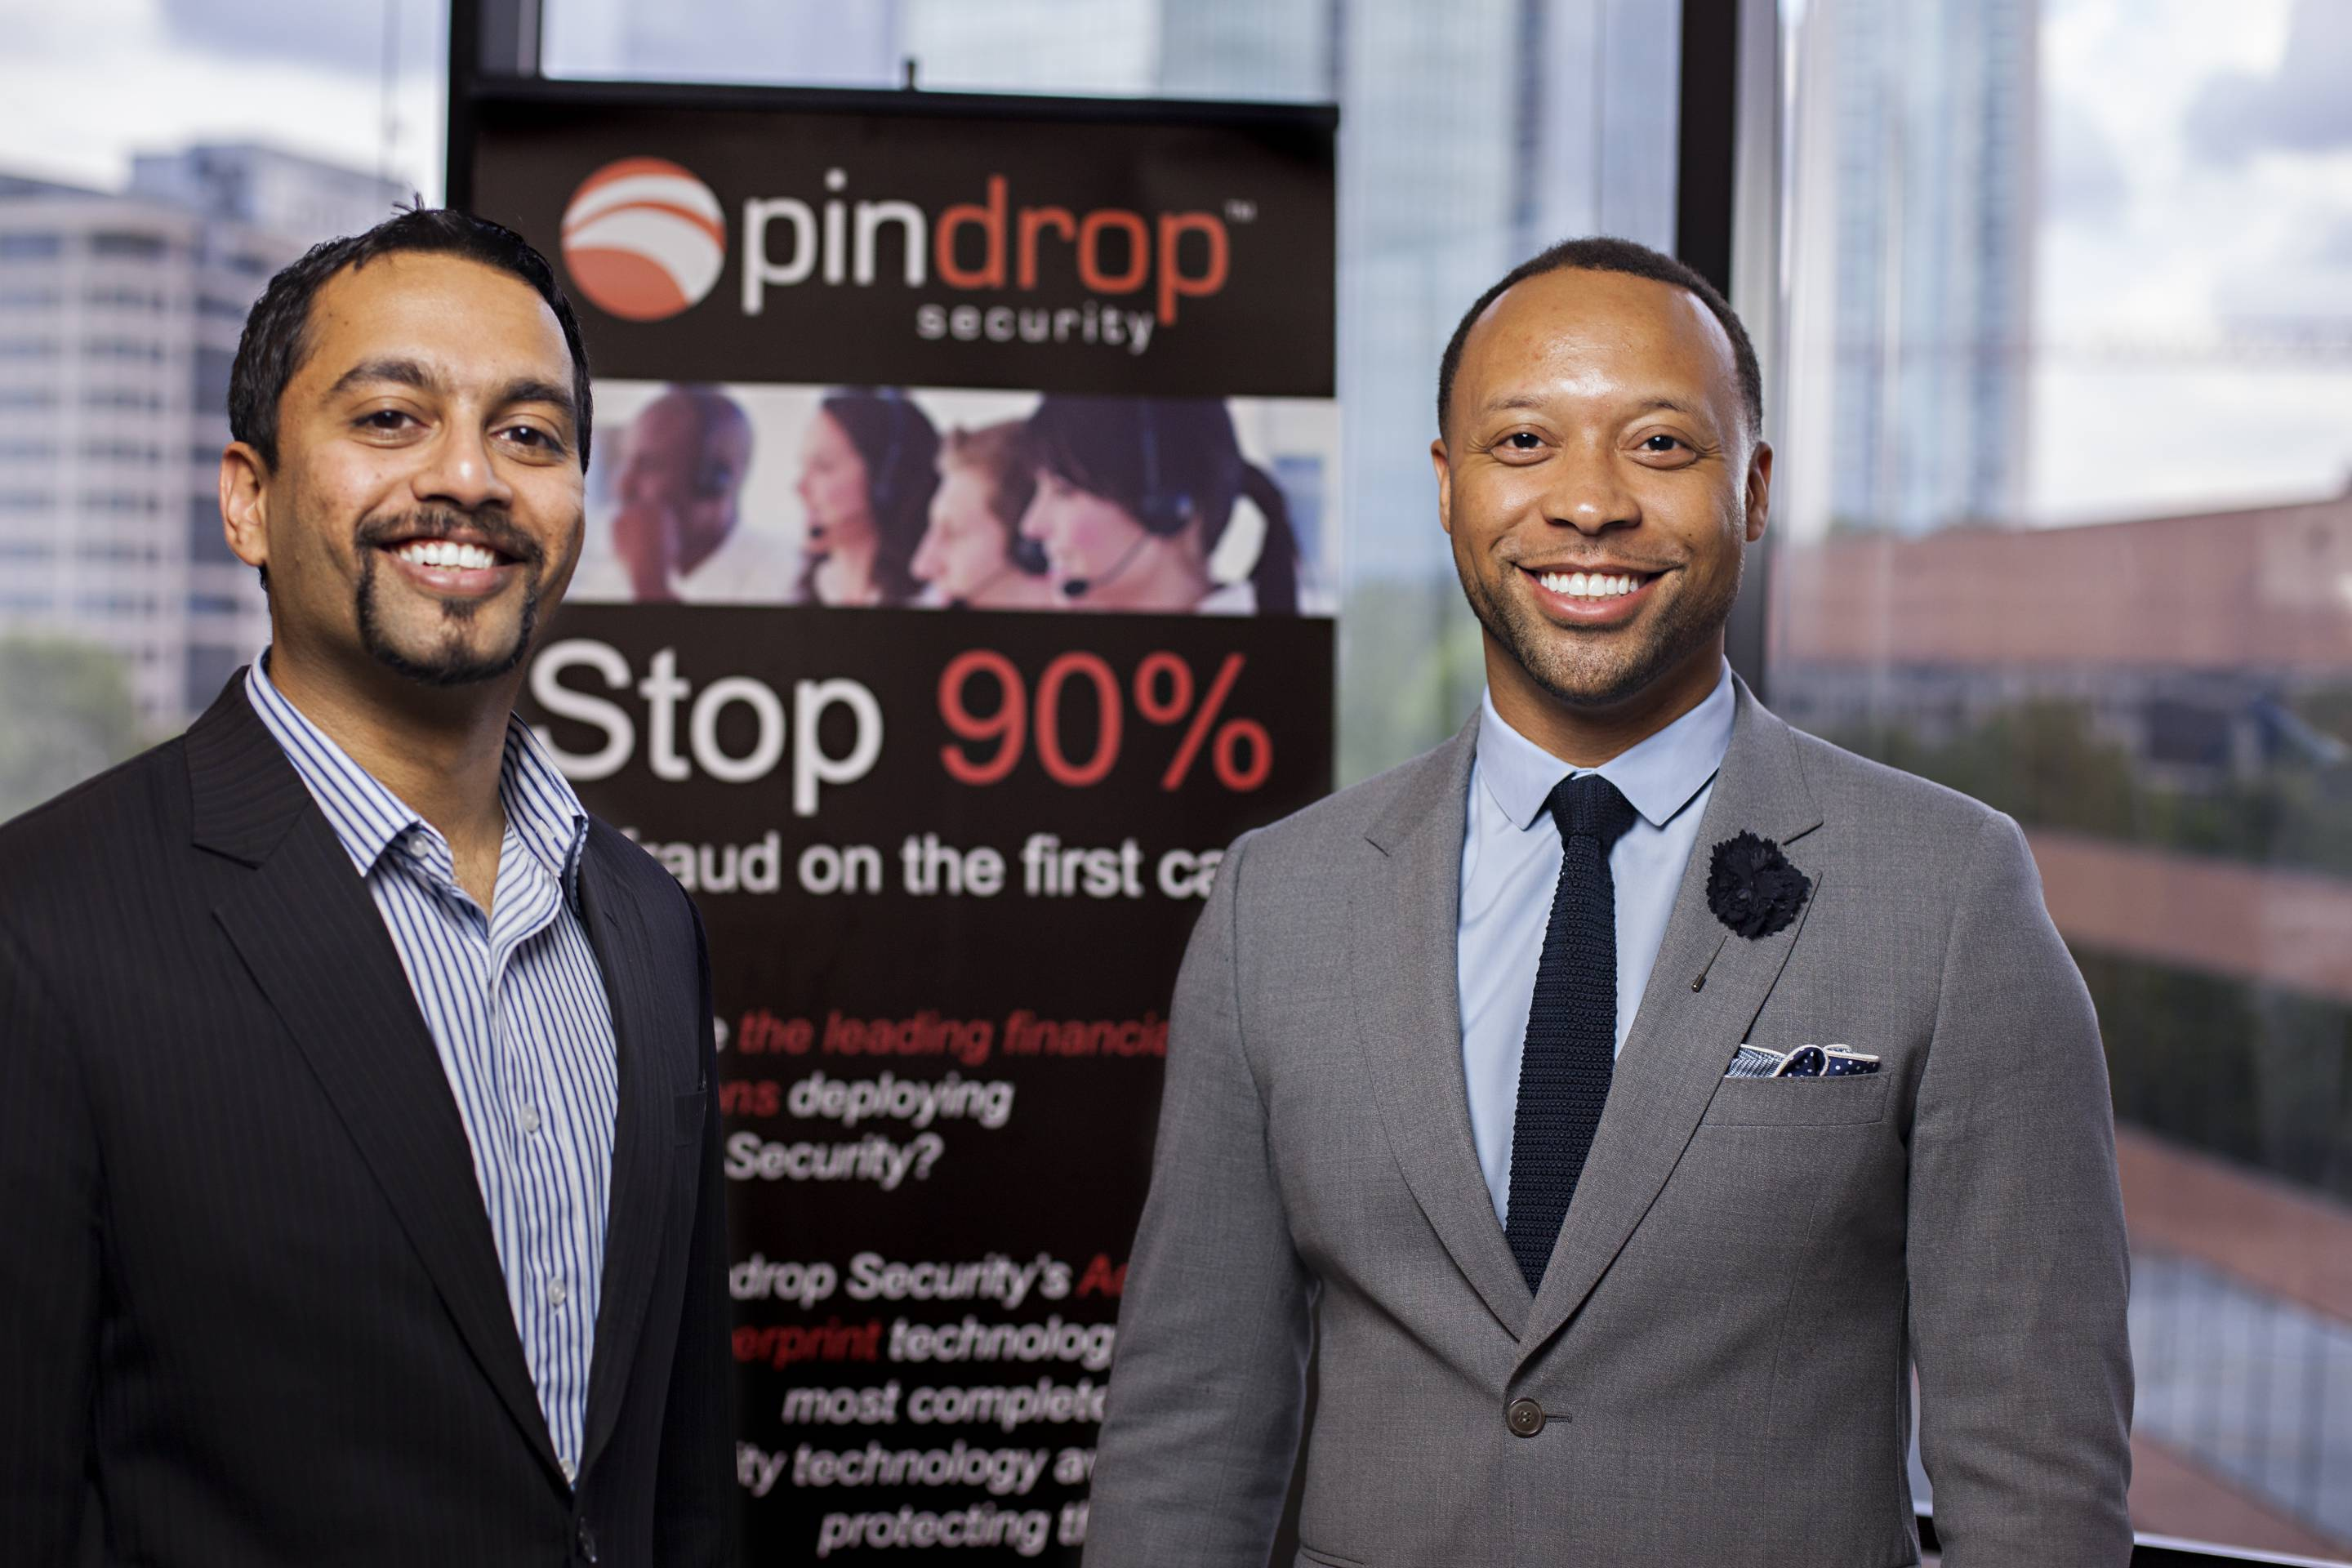 CEO of Pindrop Security Vijay Balasubramaniyan, left, and Executive Chairman Paul Judge.